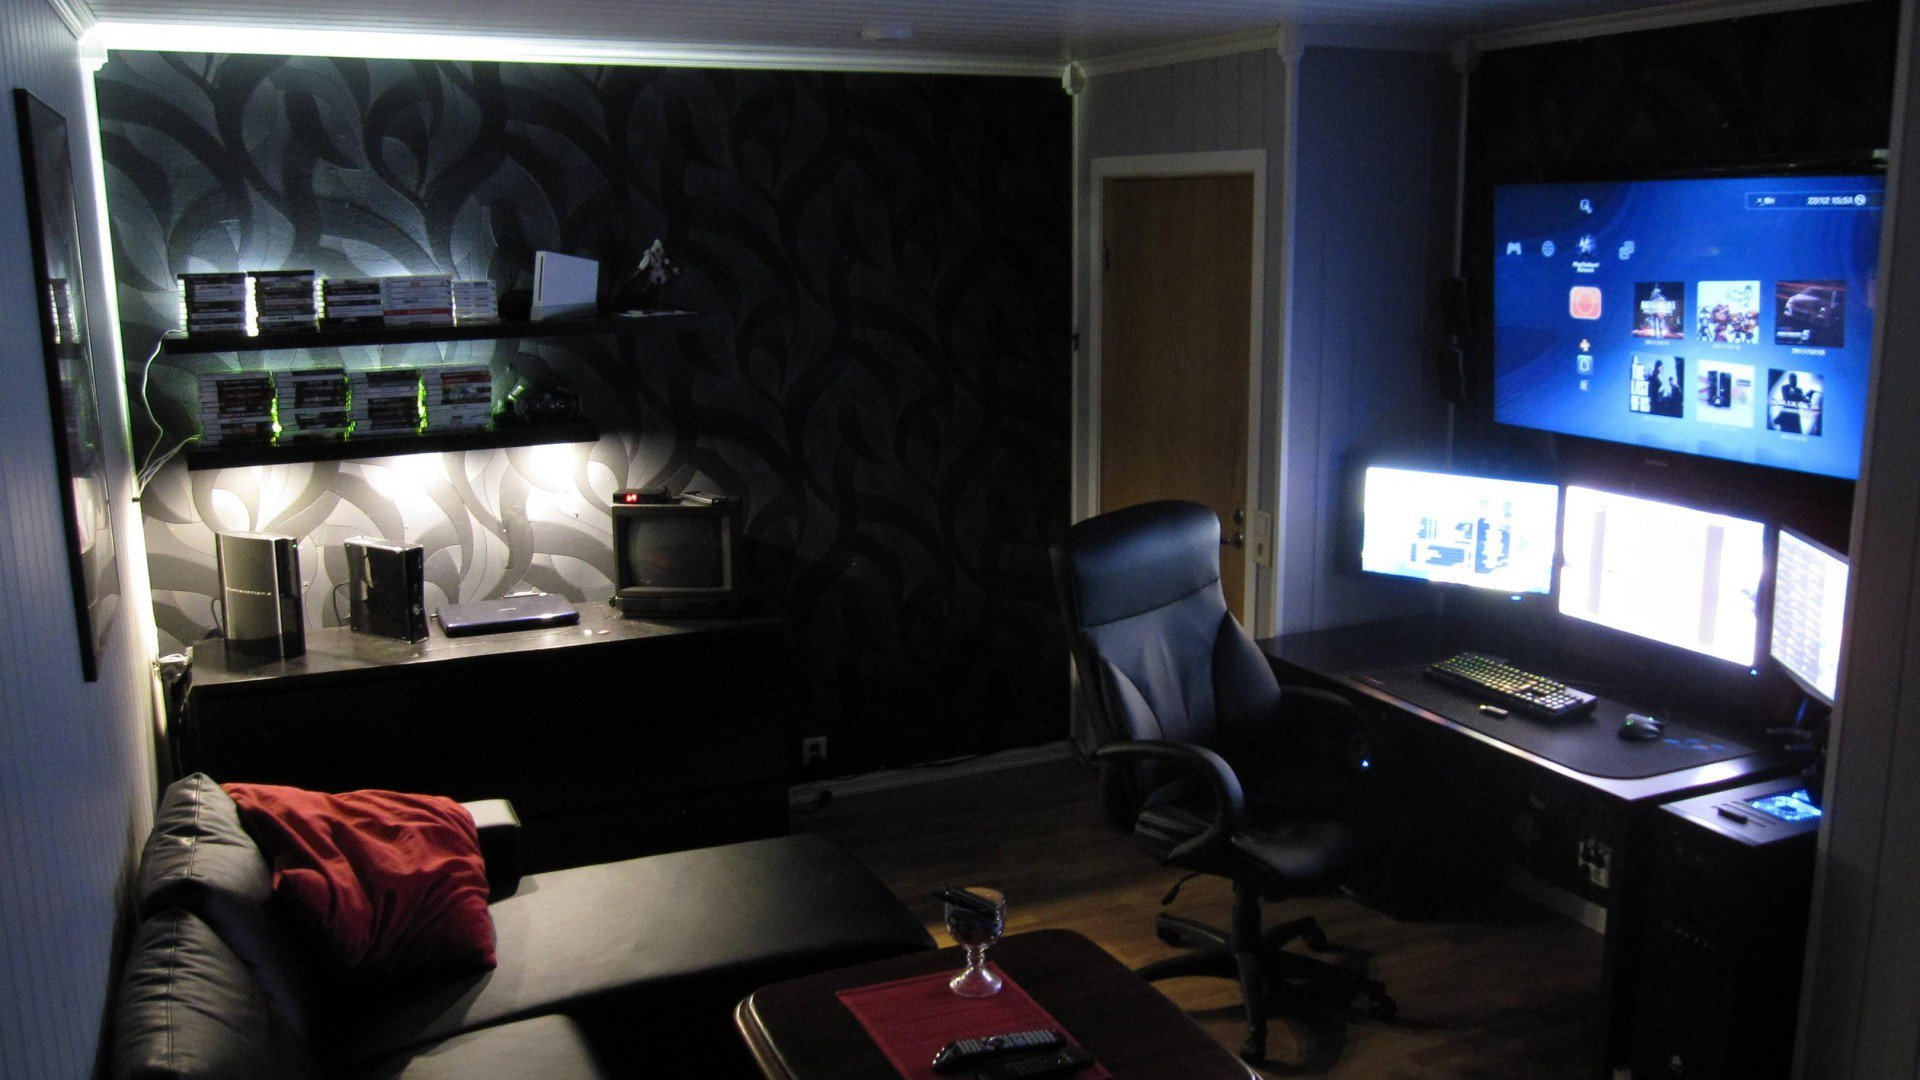 Find what you need to know about video game design degrees, online degree options, accredit. 50+ Best Setup of Video Game Room Ideas A Gamer's Guide